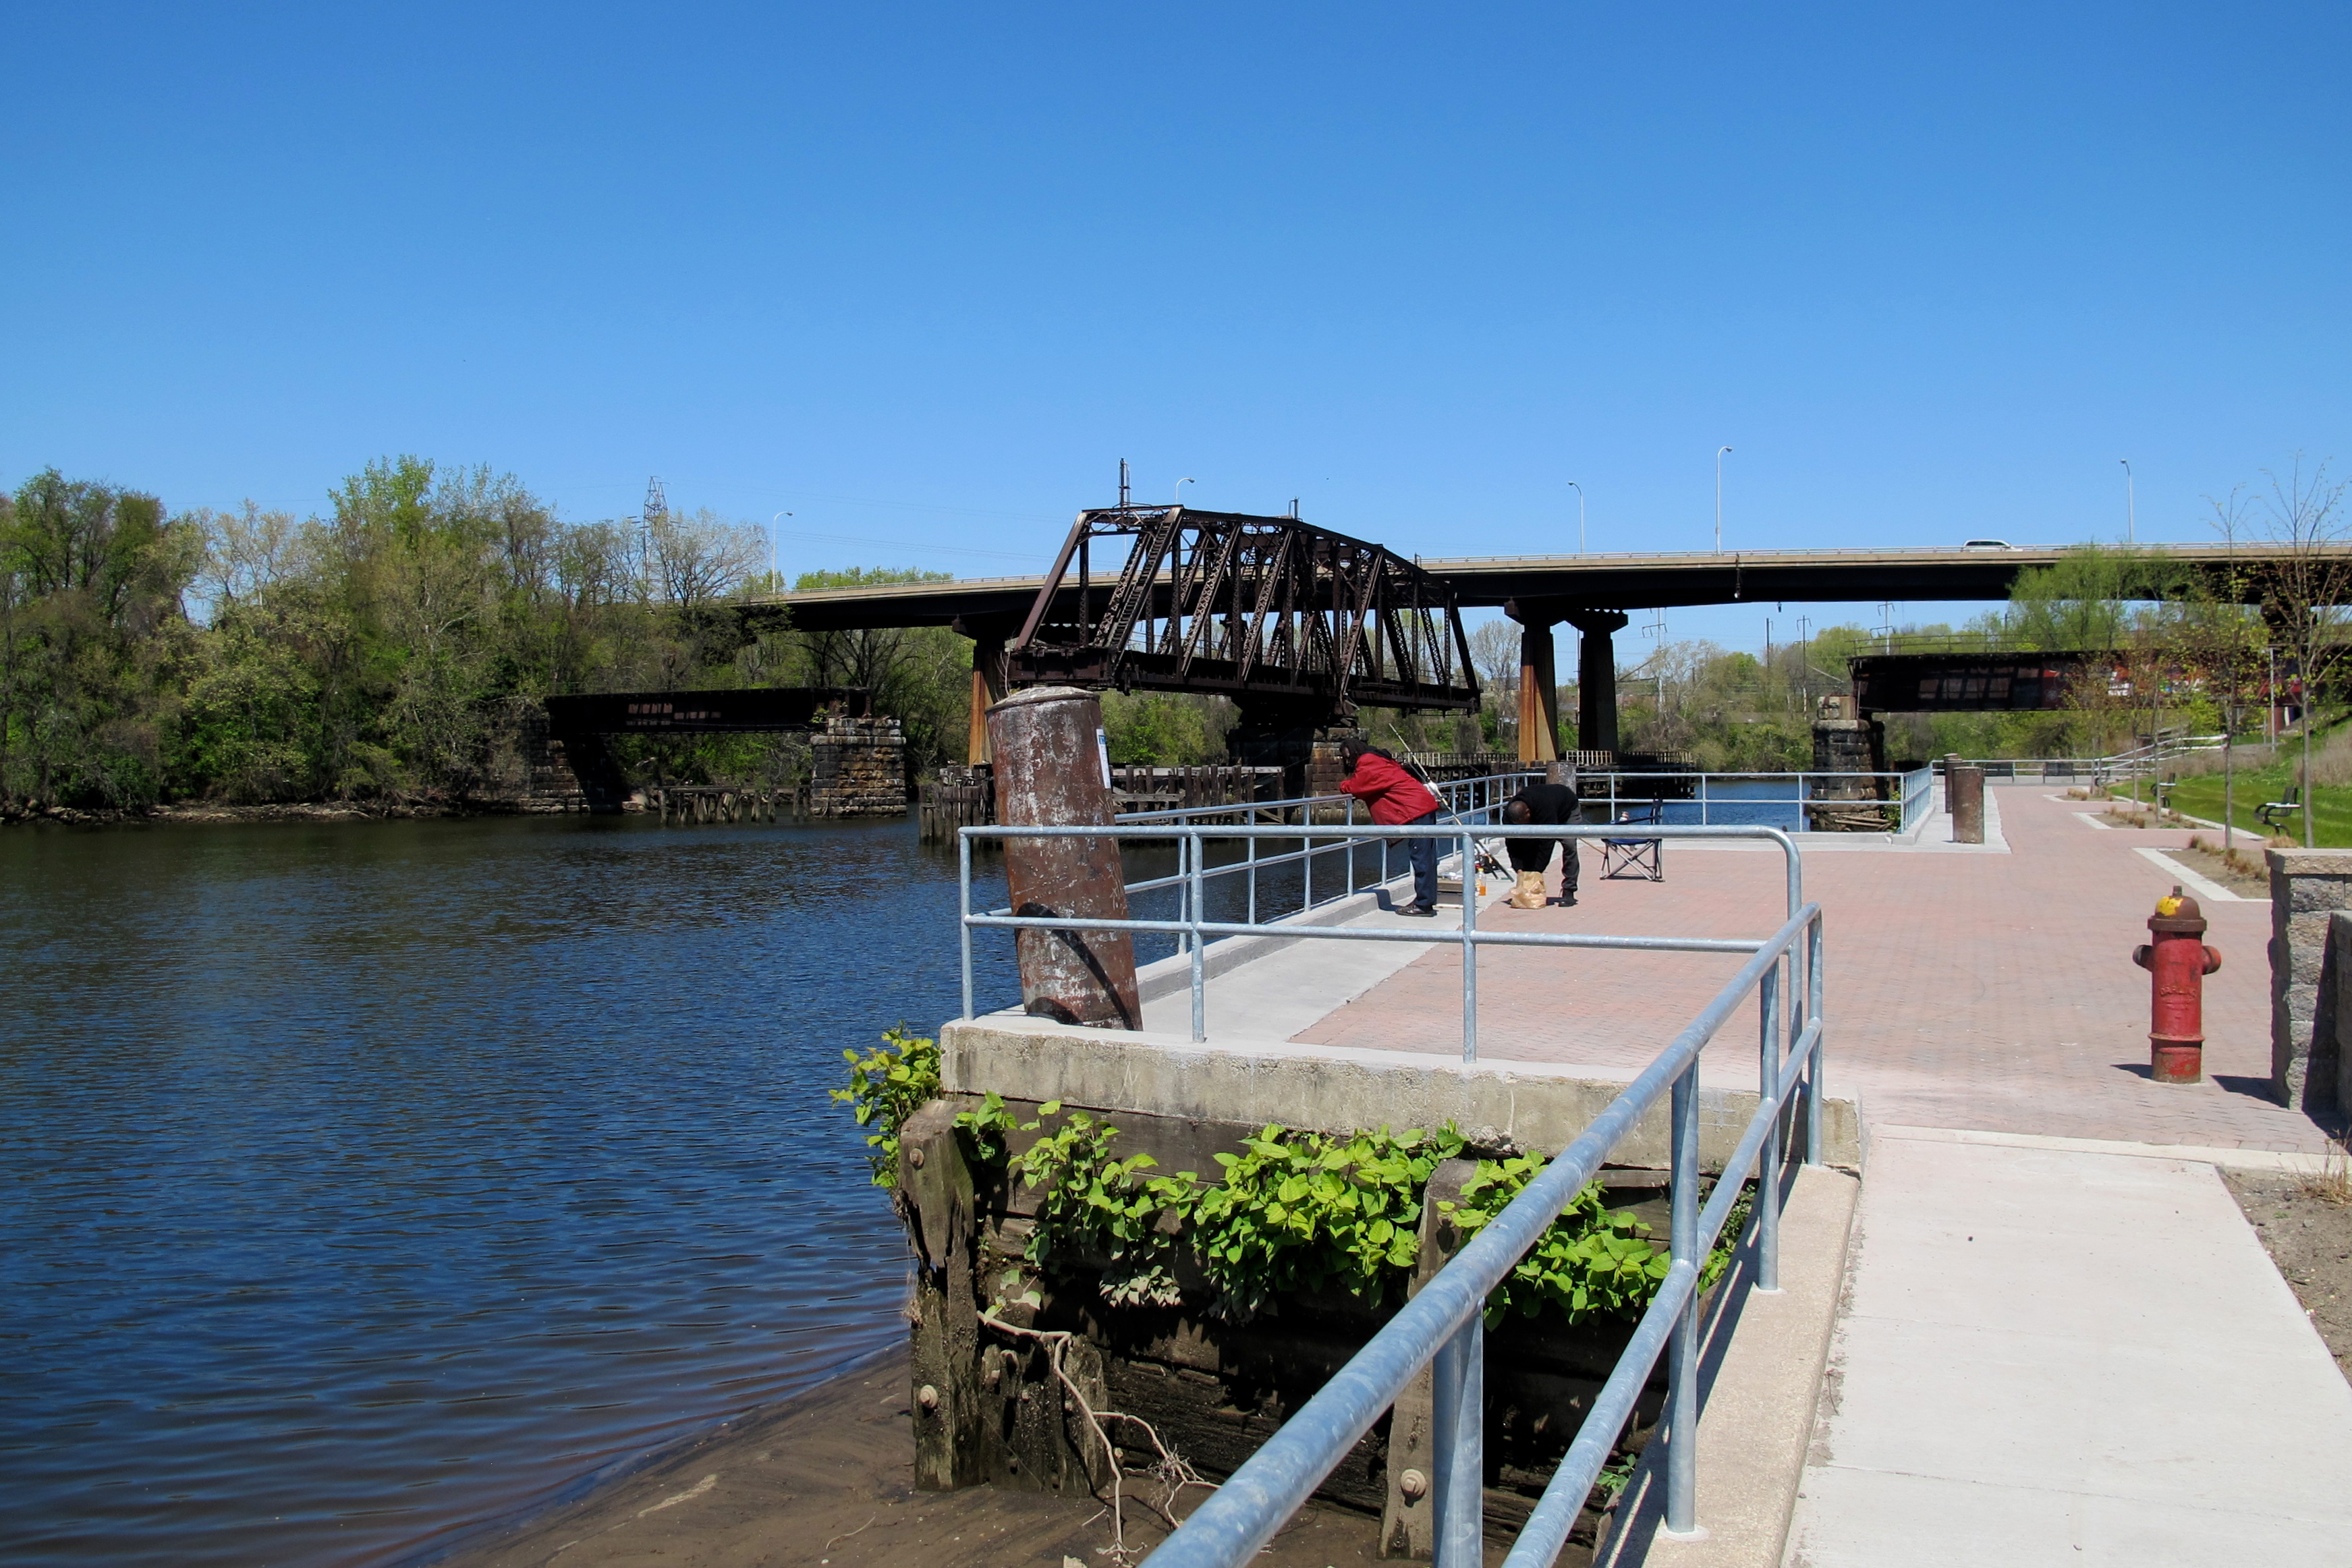 (Will the swing bridge next to the Gray's Ferry bridge be reused to connect Gray's Ferry Crescent with Bartram's Mile?)